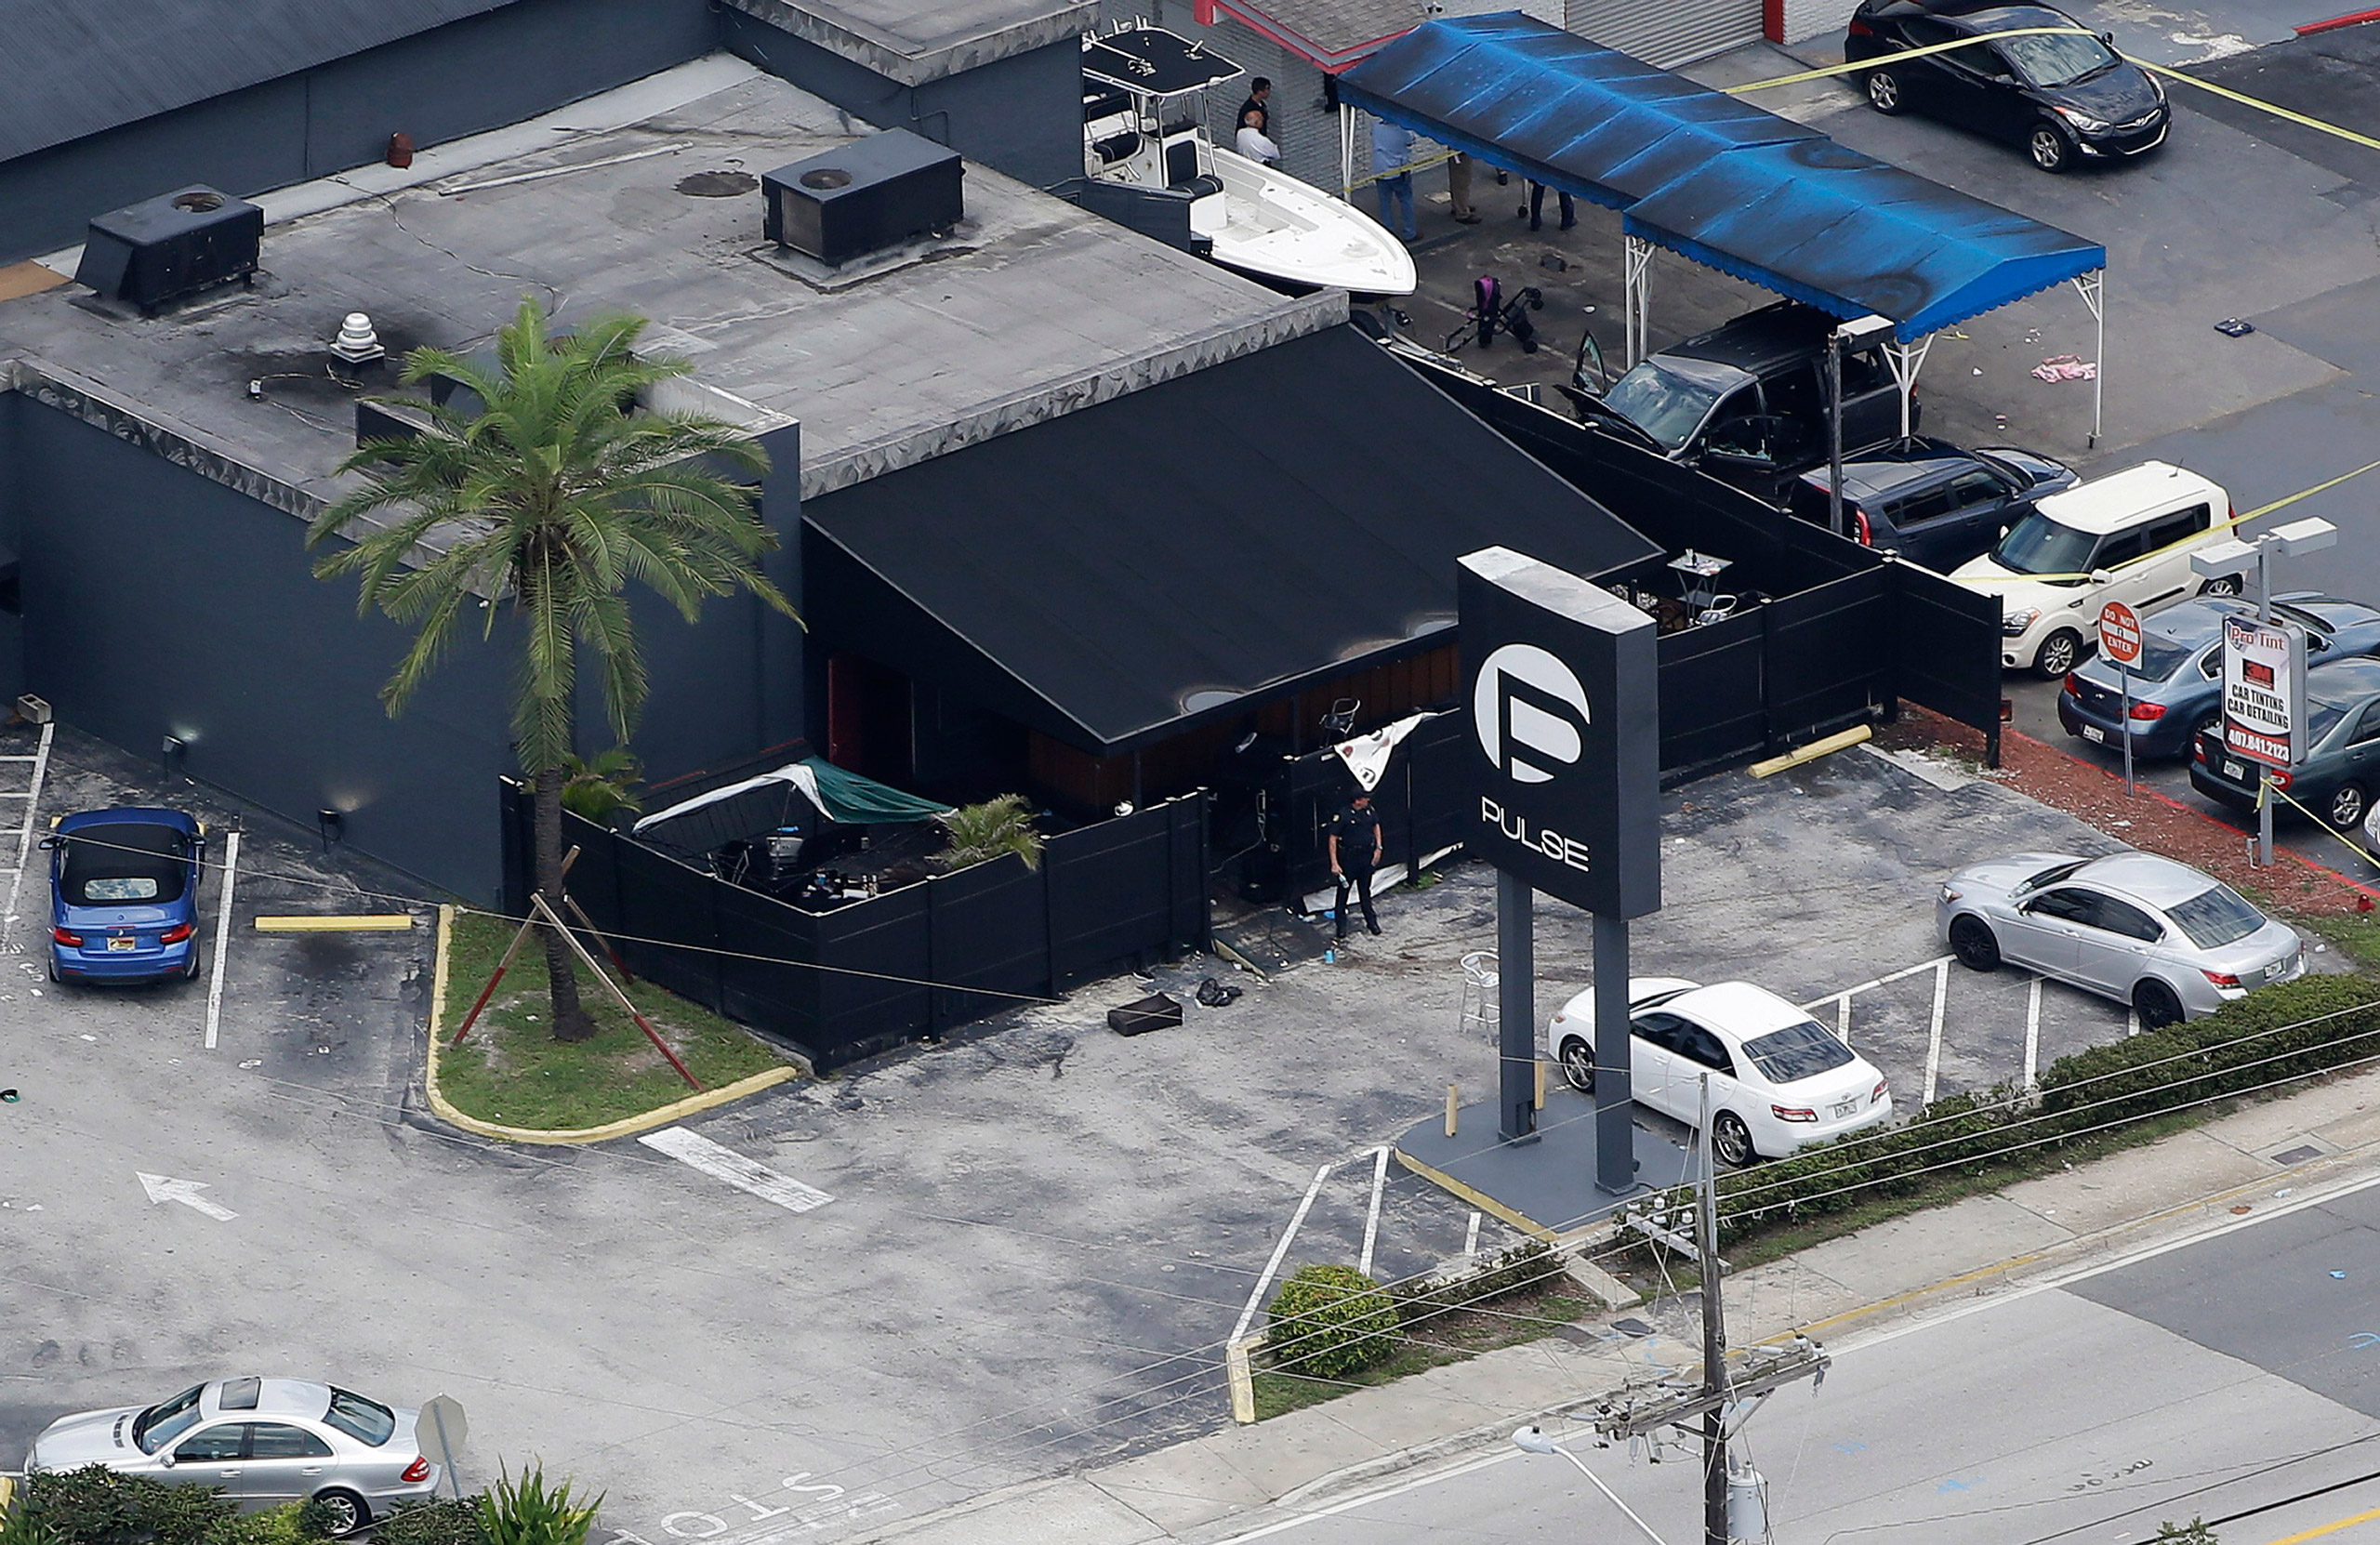 Law enforcement officials work at the Pulse Orlando nightclub following a fatal shooting in Orlando, Fla., on June 12, 2016.